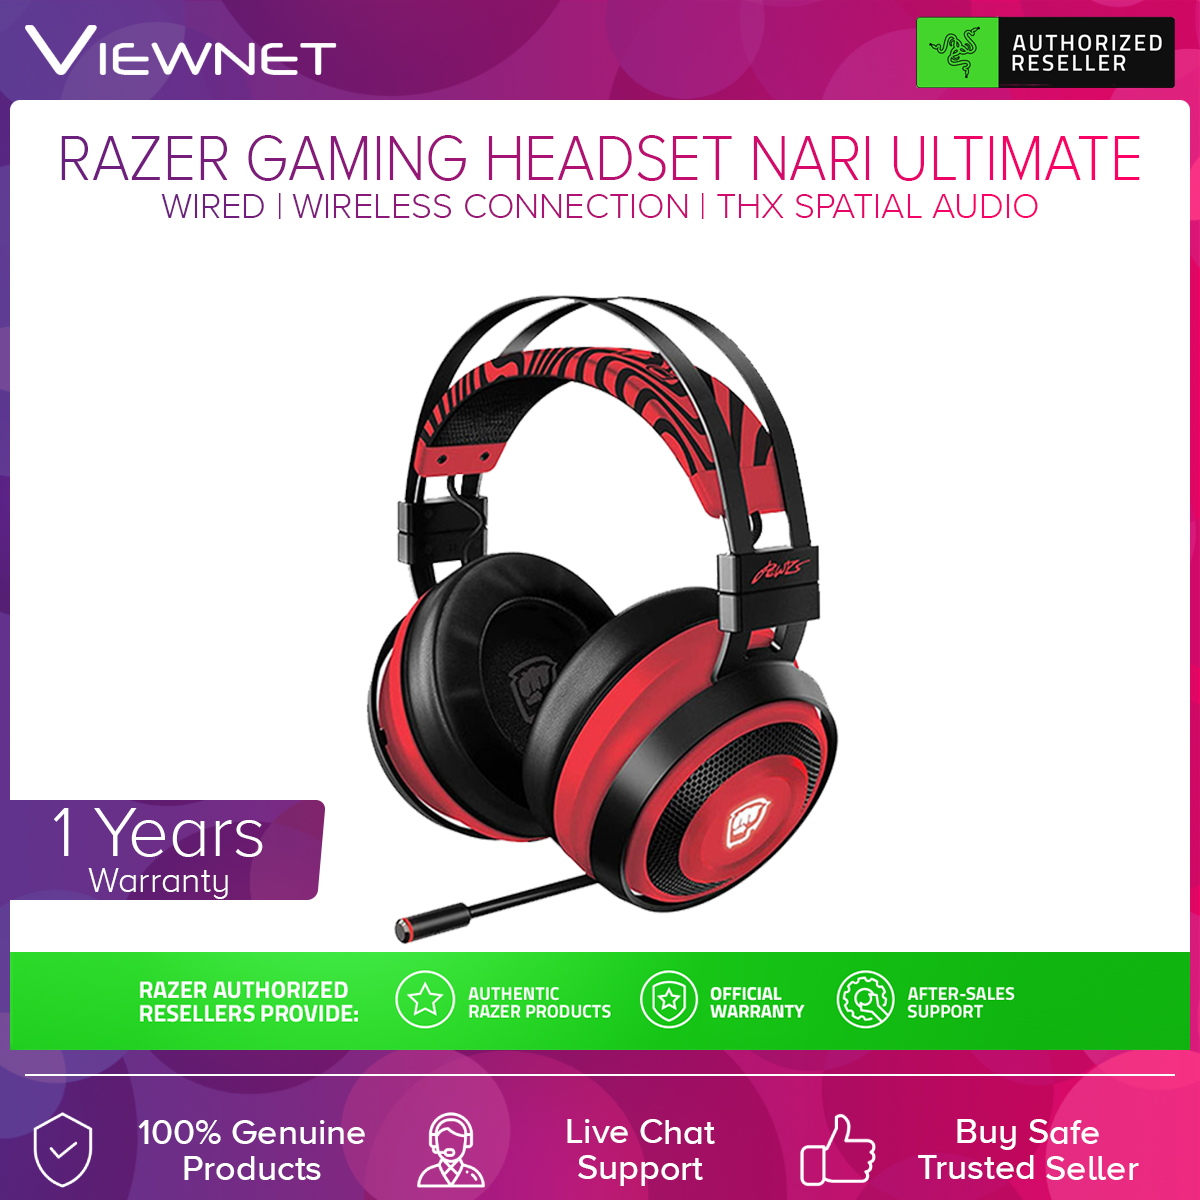 Razer Gaming Headset Nari Ultimate Pewdiepie Edition with Razer Hypersense, THX Spatial Audio, Aluminum Frame, Cooling Gel Cushions, 2.4GHz Wireless Connection or 3.5MM Audio Jack